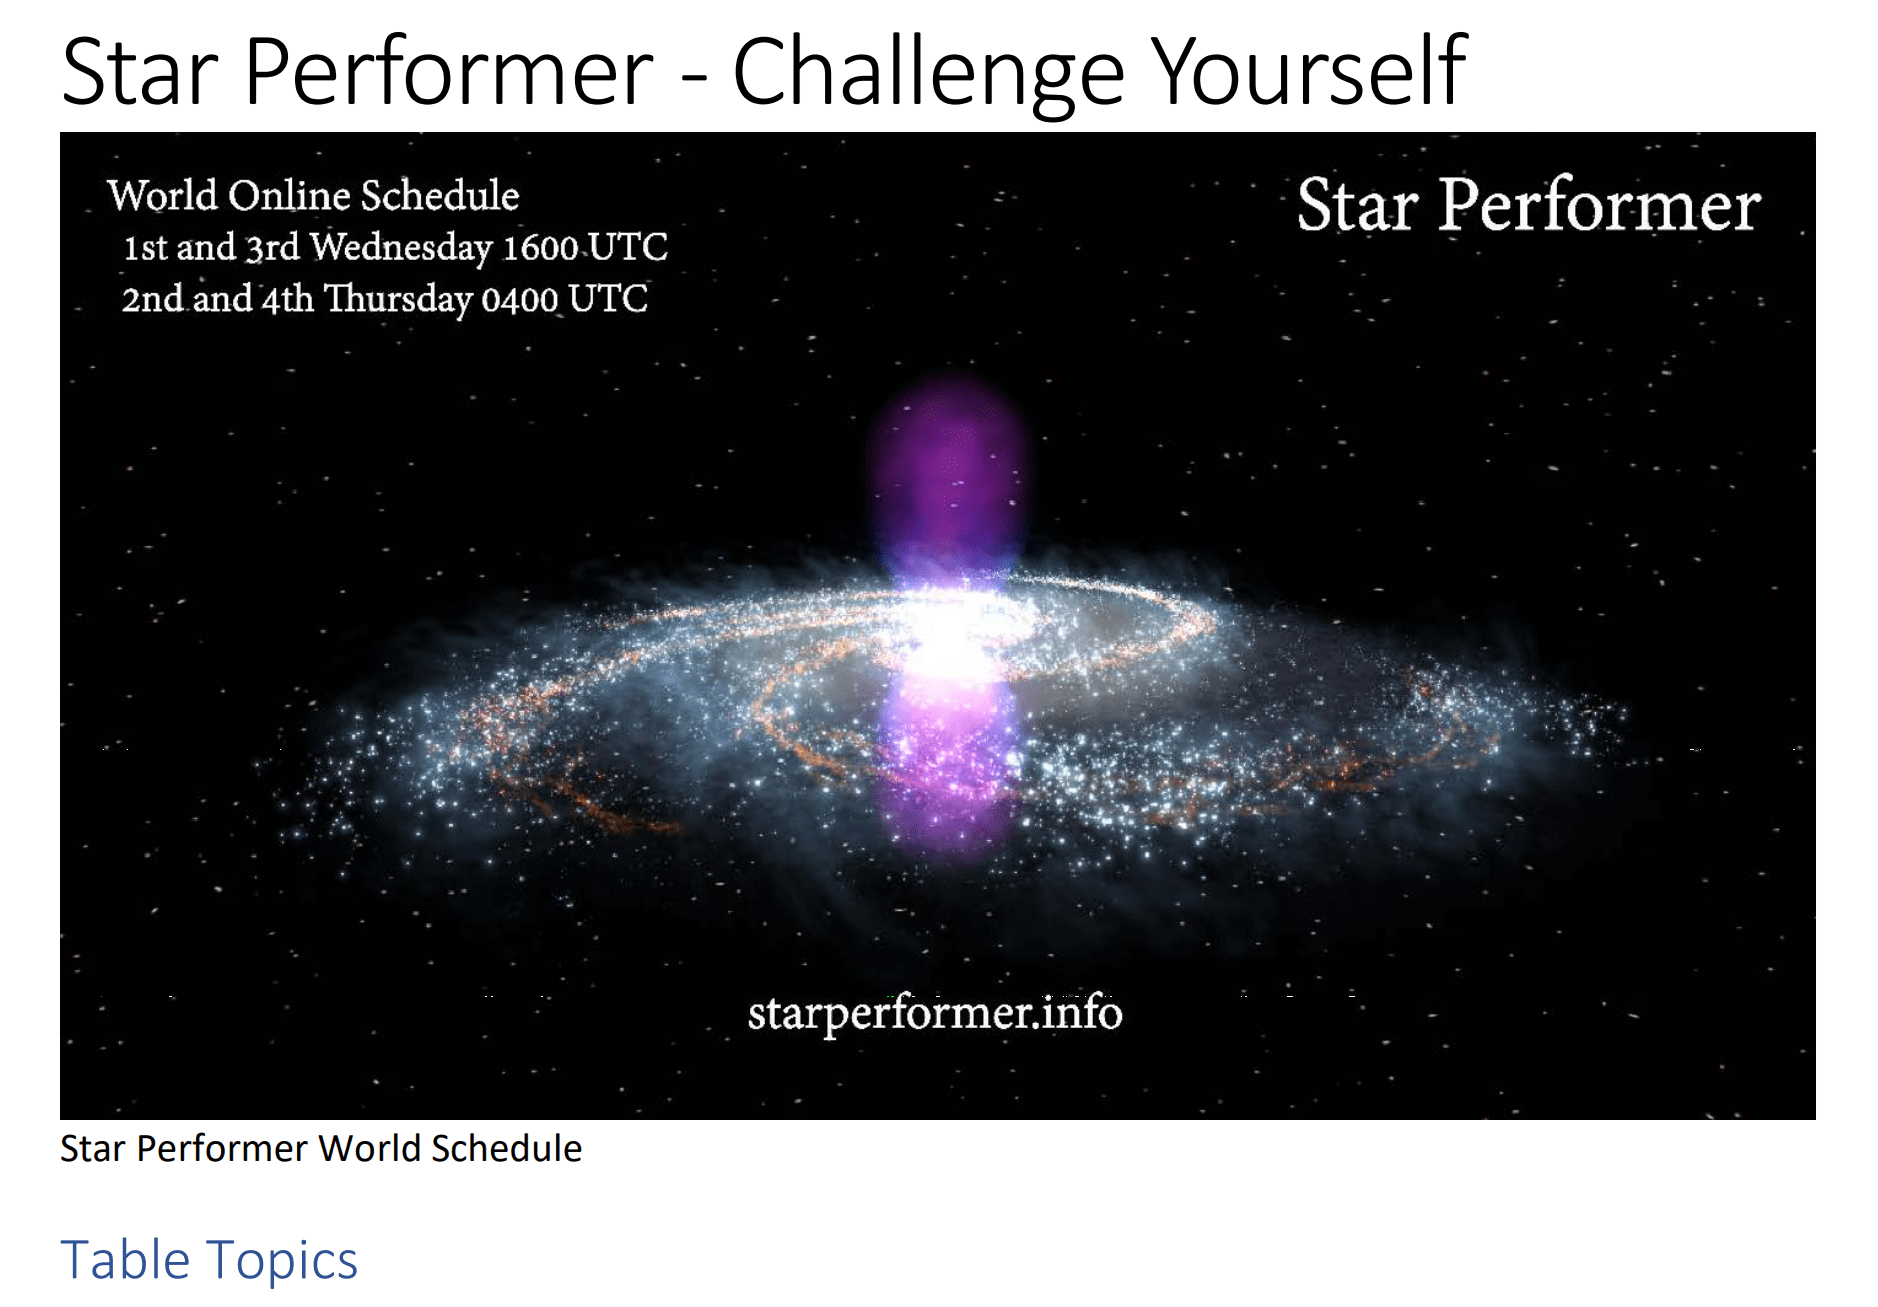 Star Performer Challege Yourself Table Topics. Copyright 2018 by Steve J Davis. All Rights Reserved. https://starperformer.info